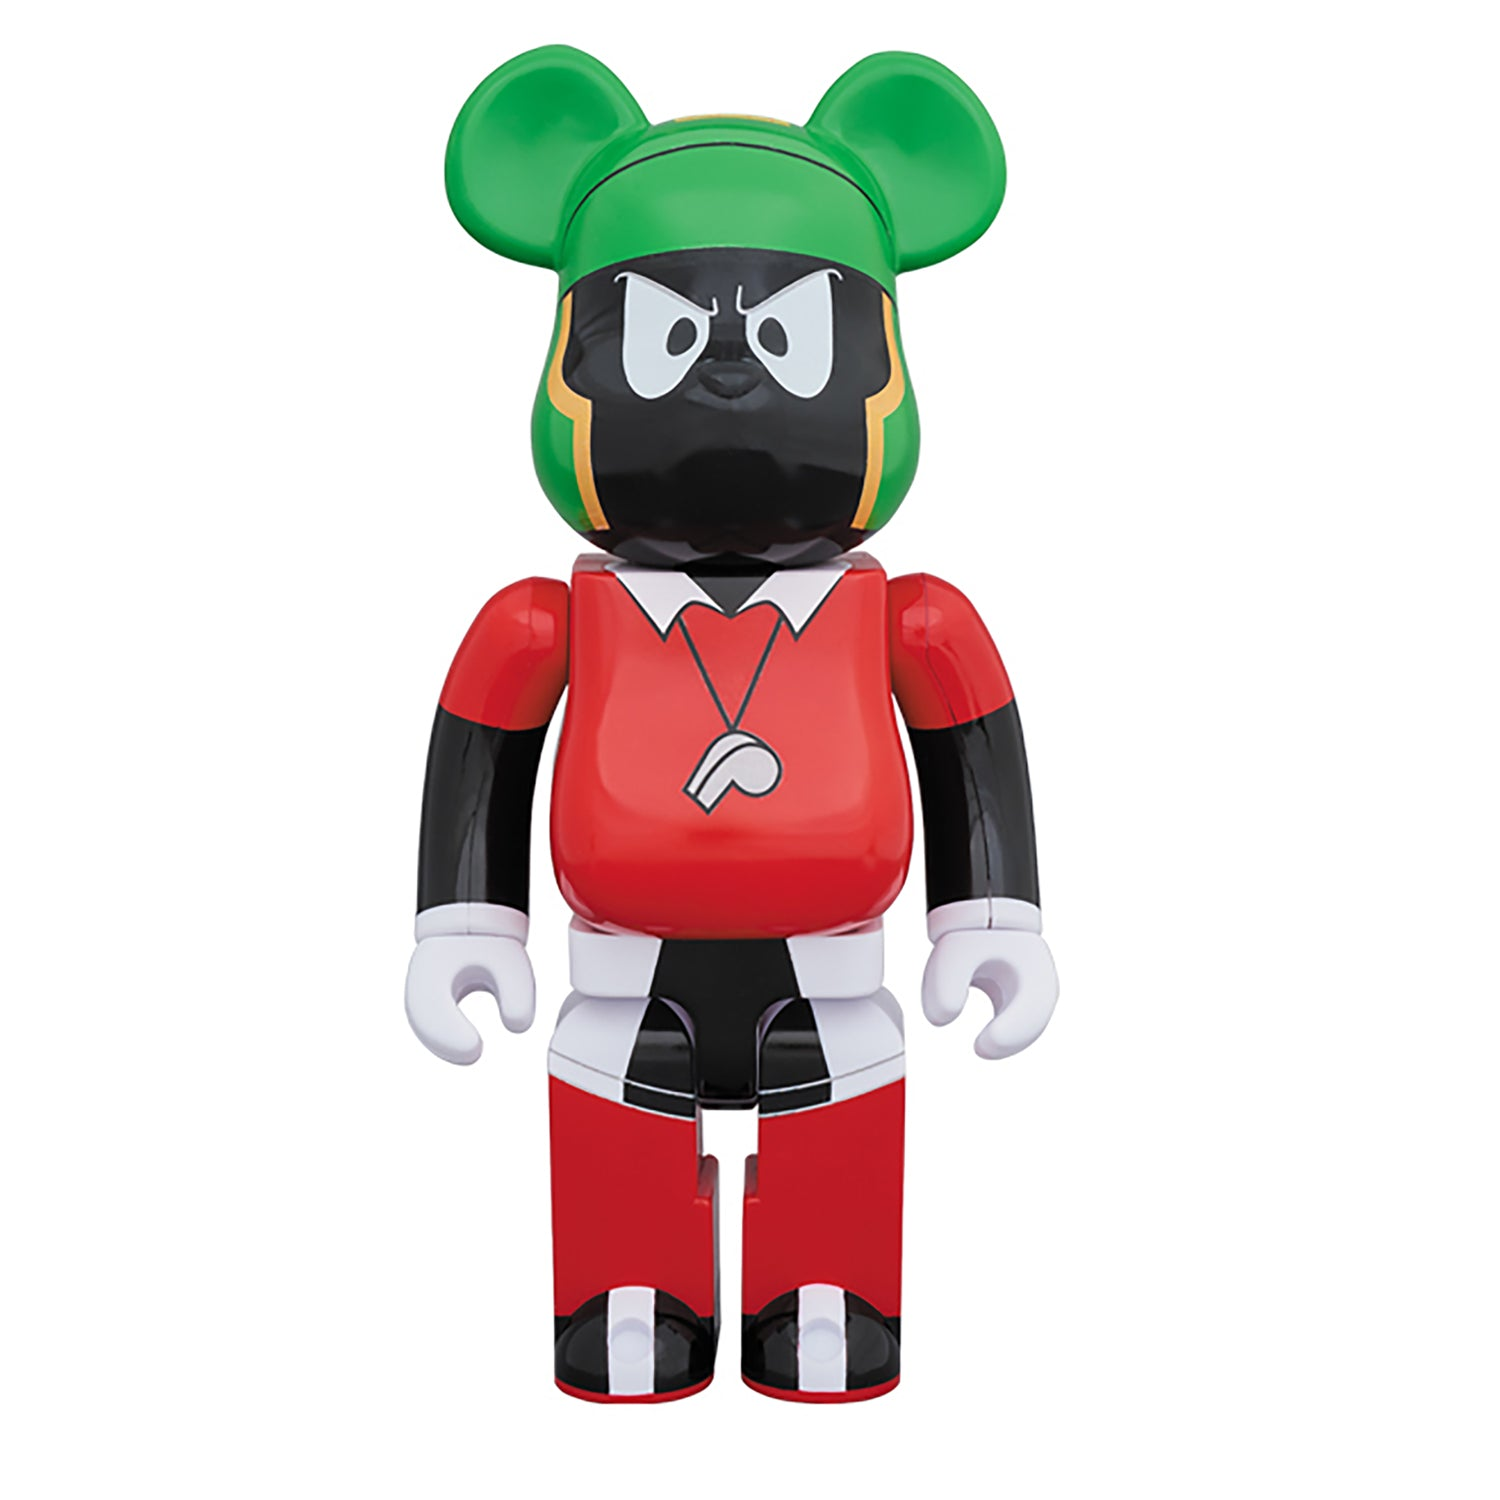 MARVIN THE MARTIAN 1000%